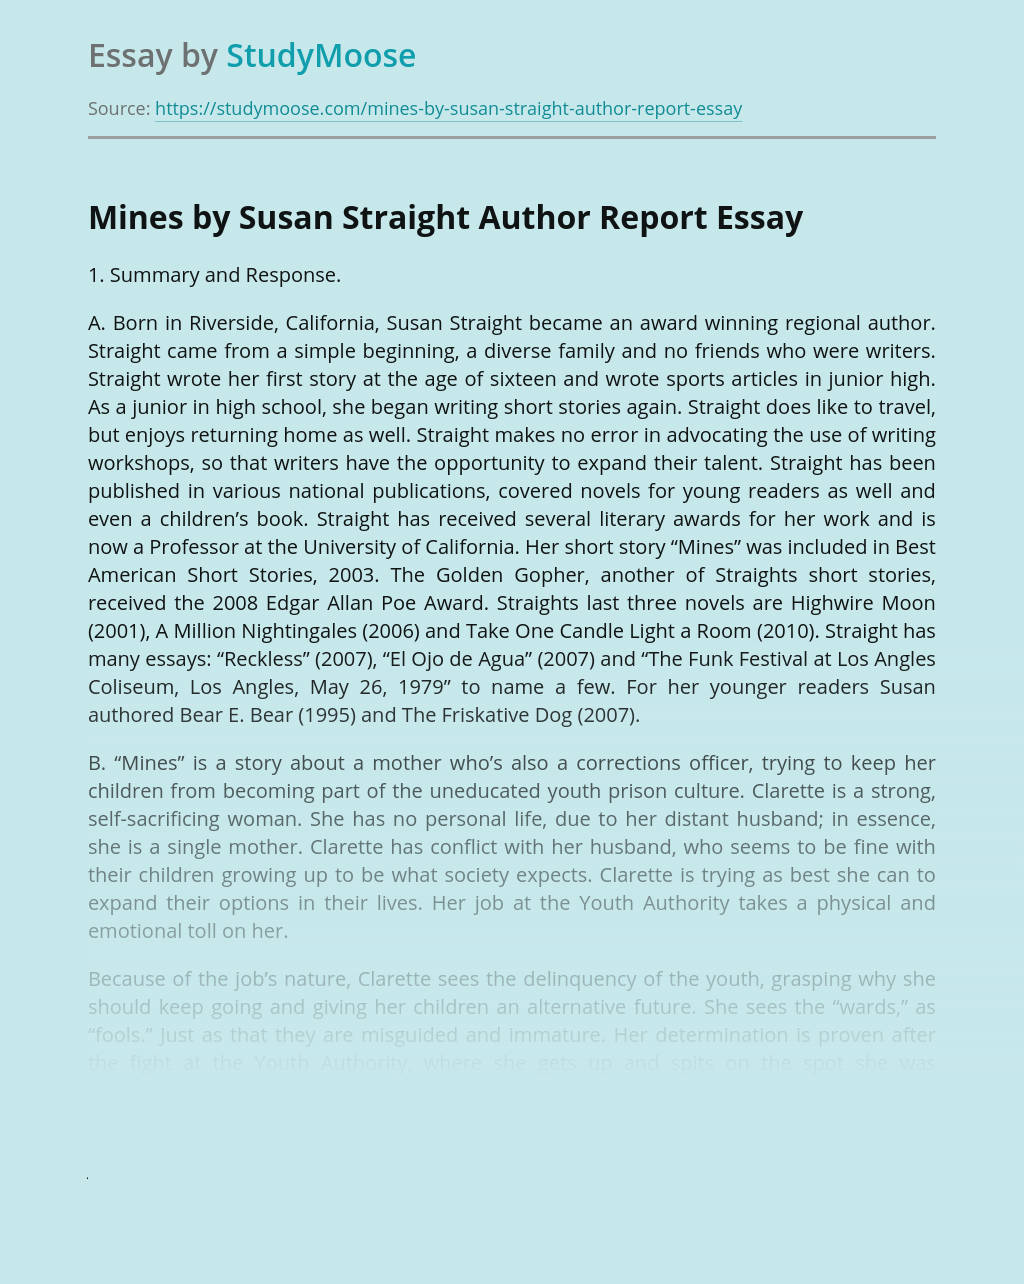 Mines by Susan Straight Author Report